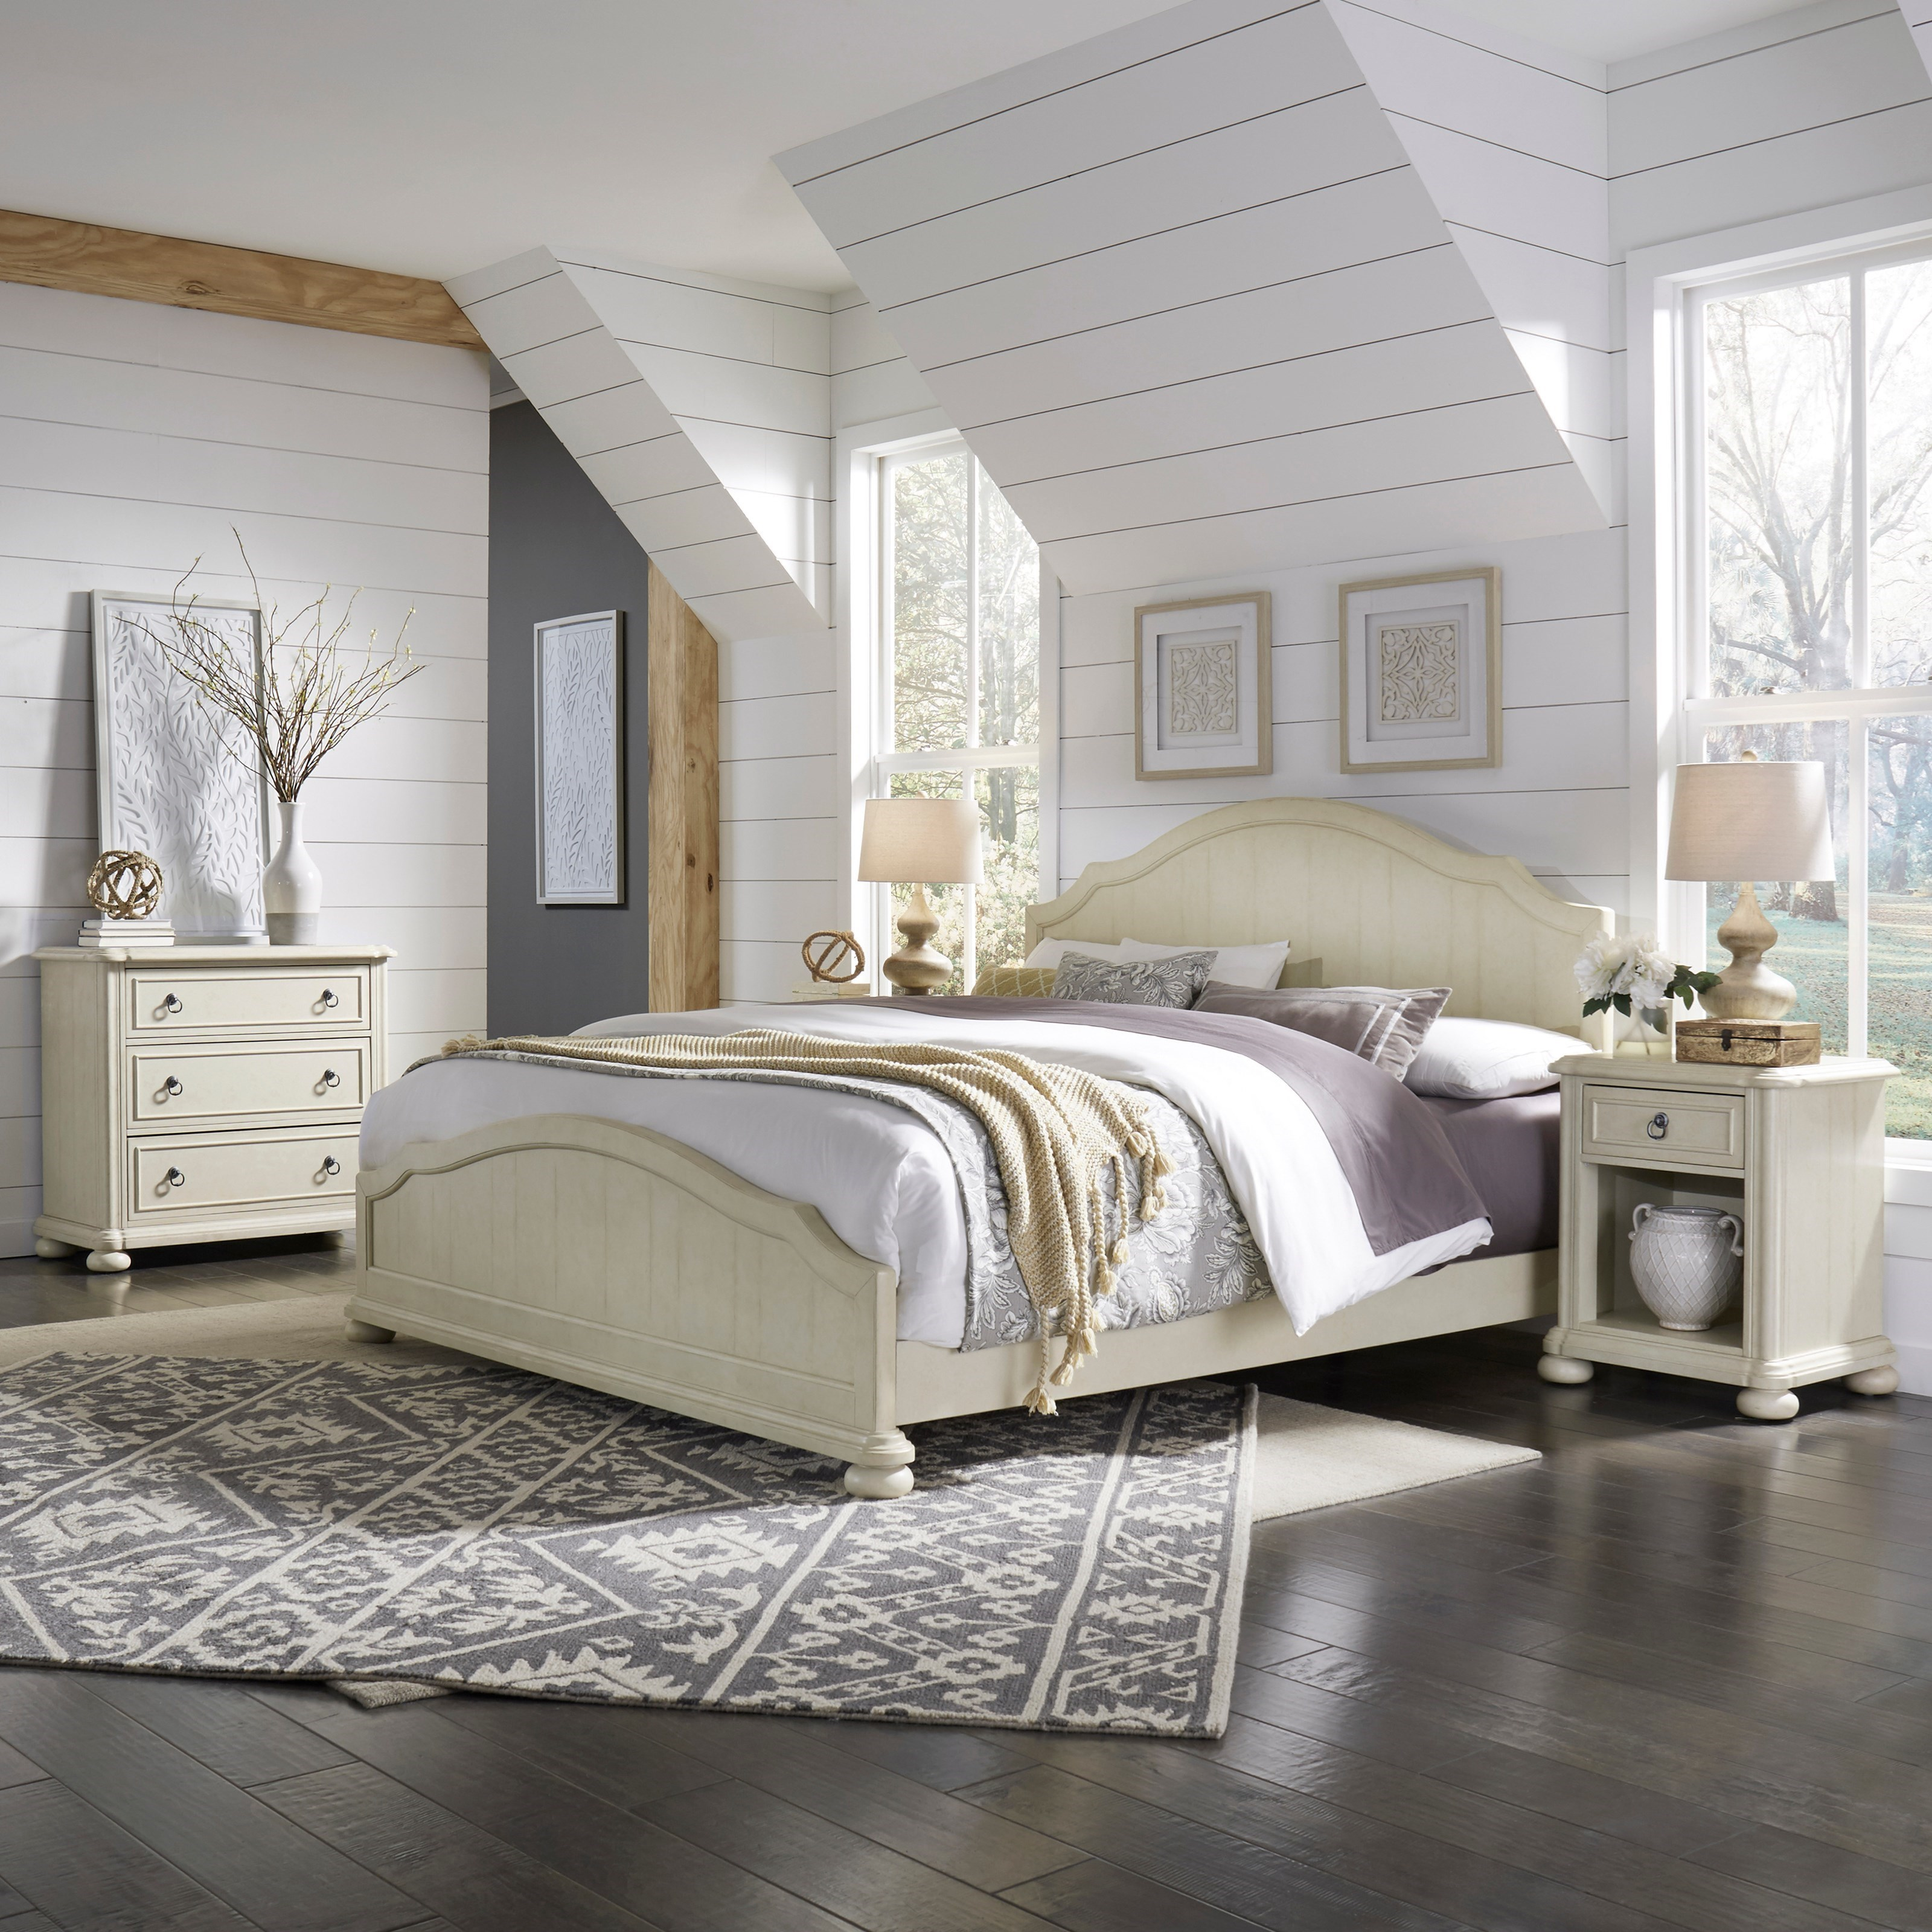 Provence King Bedroom Group by Homestyles at Suburban Furniture